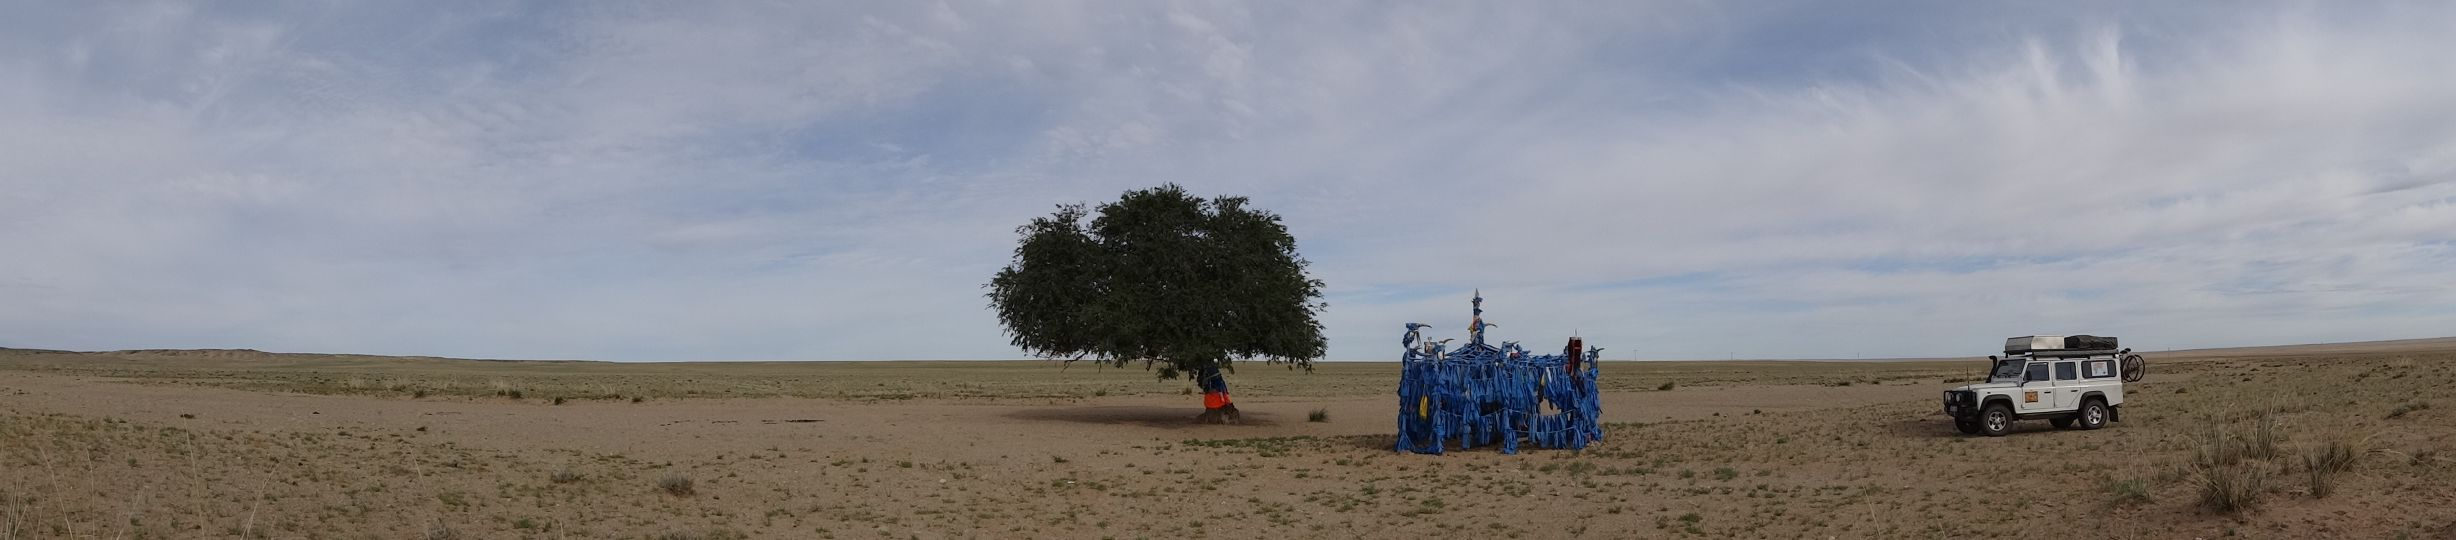 a lone tree in the Gobi Desert with an offering site next to it